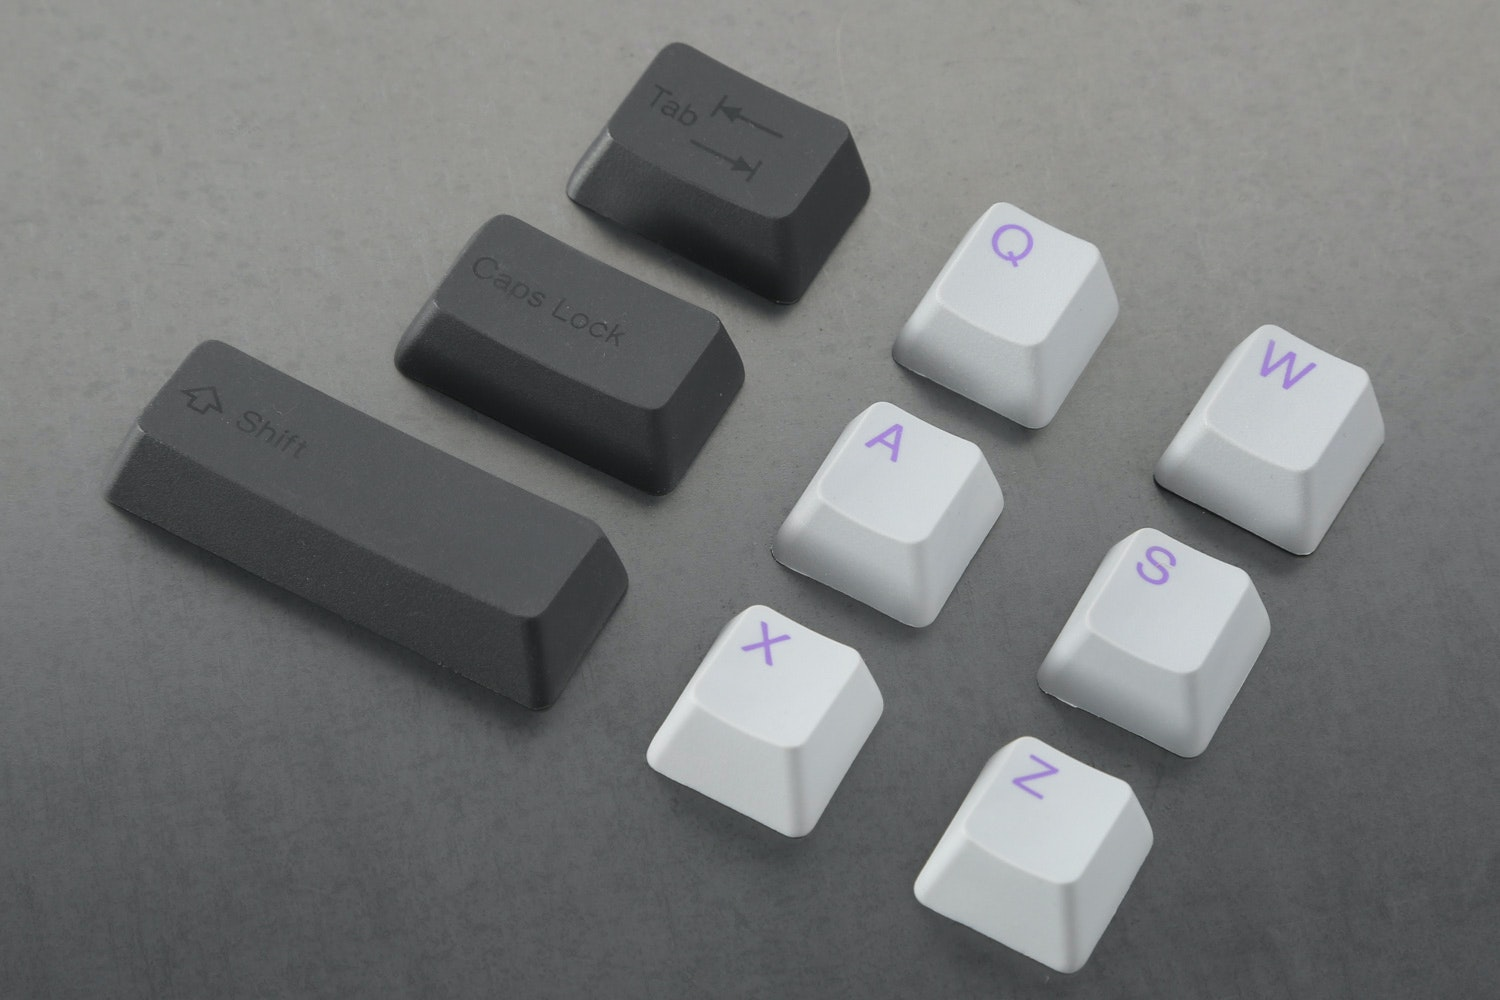 Cement/Lavender alpha keys with Onyx/Onyx modifier keys